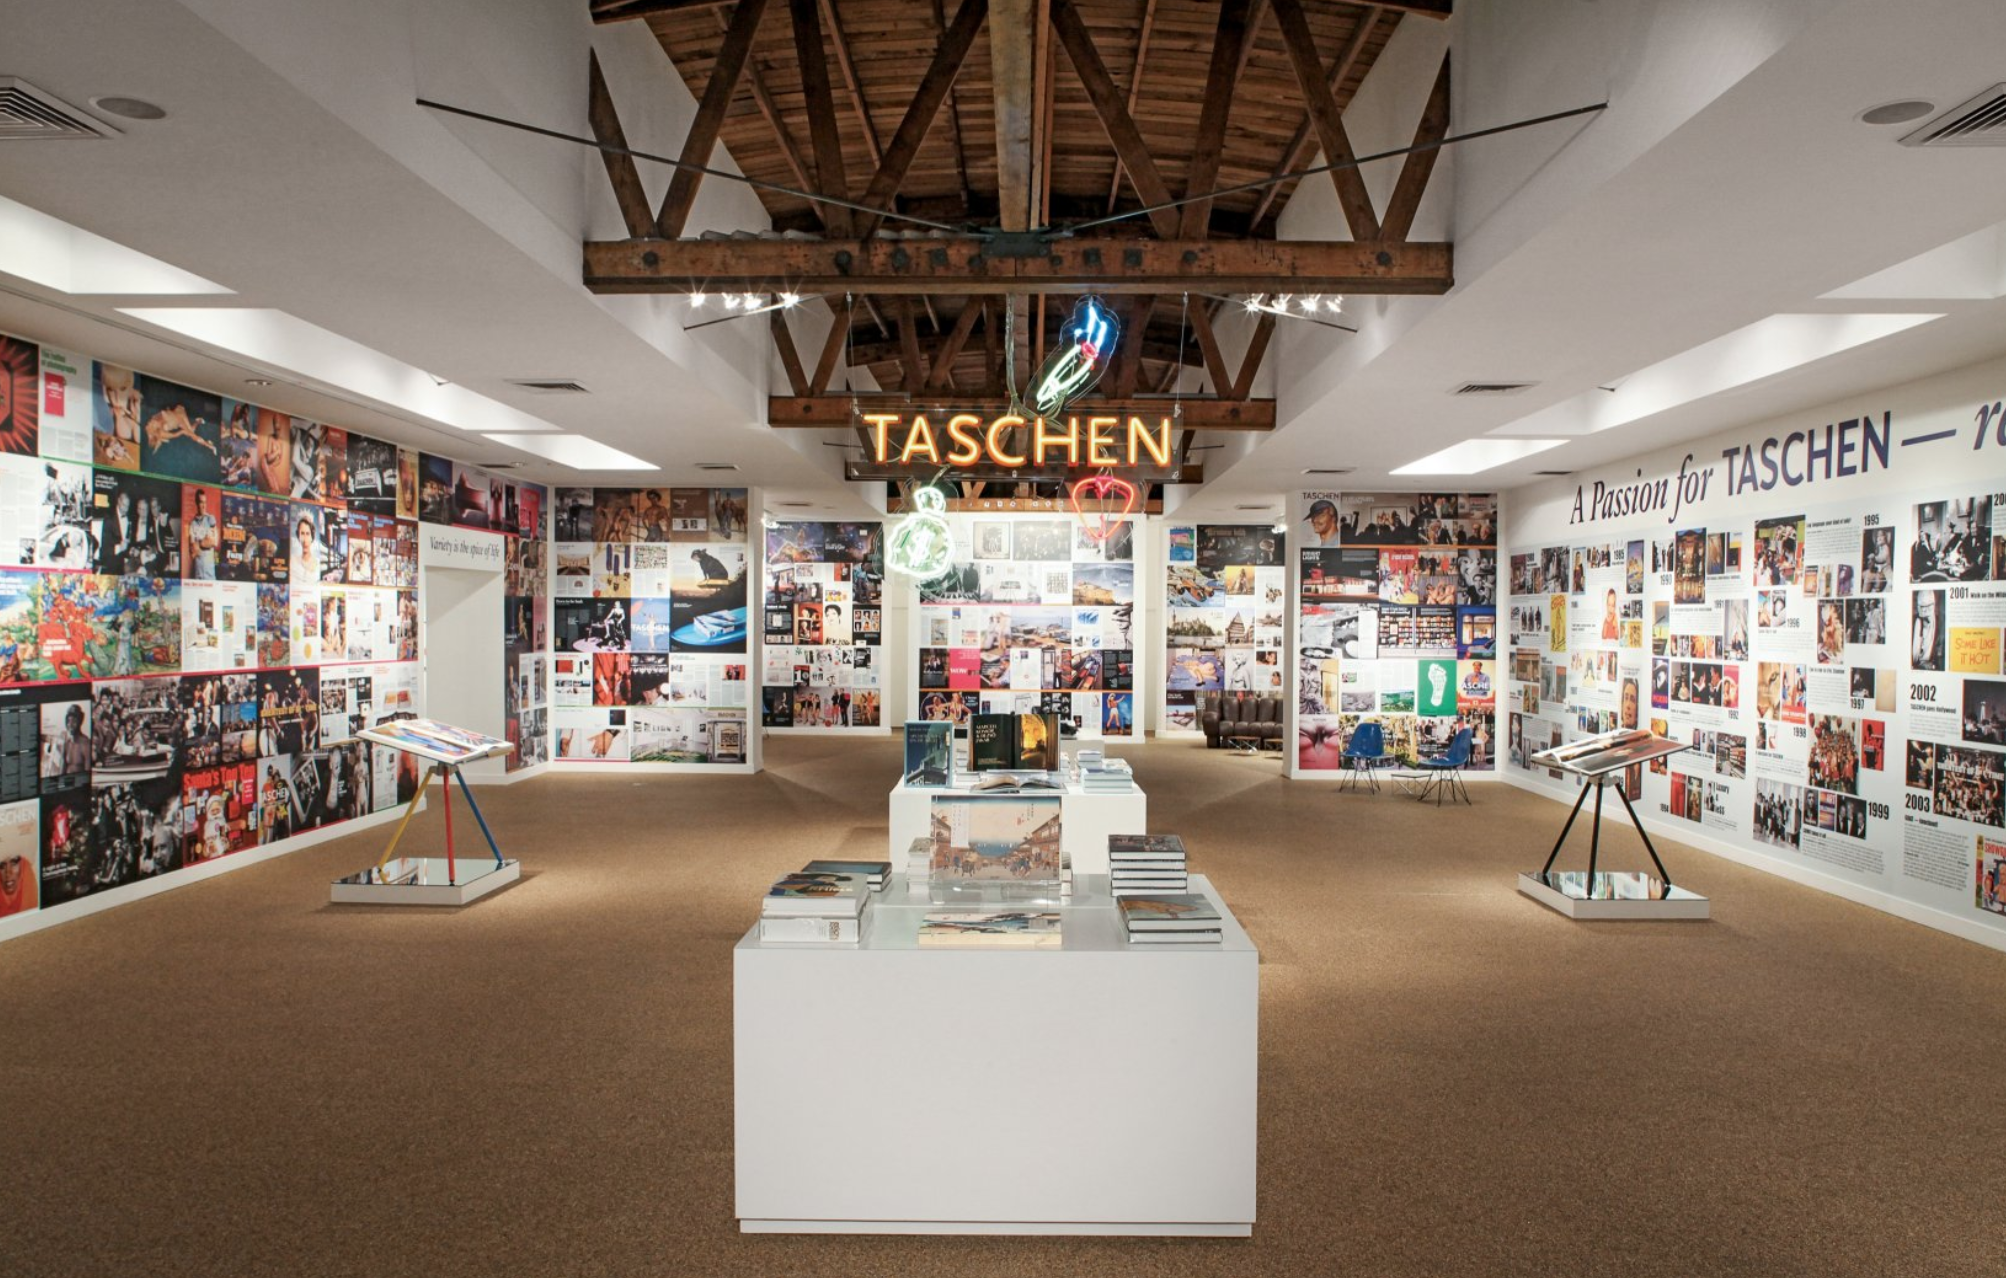 """Gallery Interior for """"A Passion For Taschen"""""""